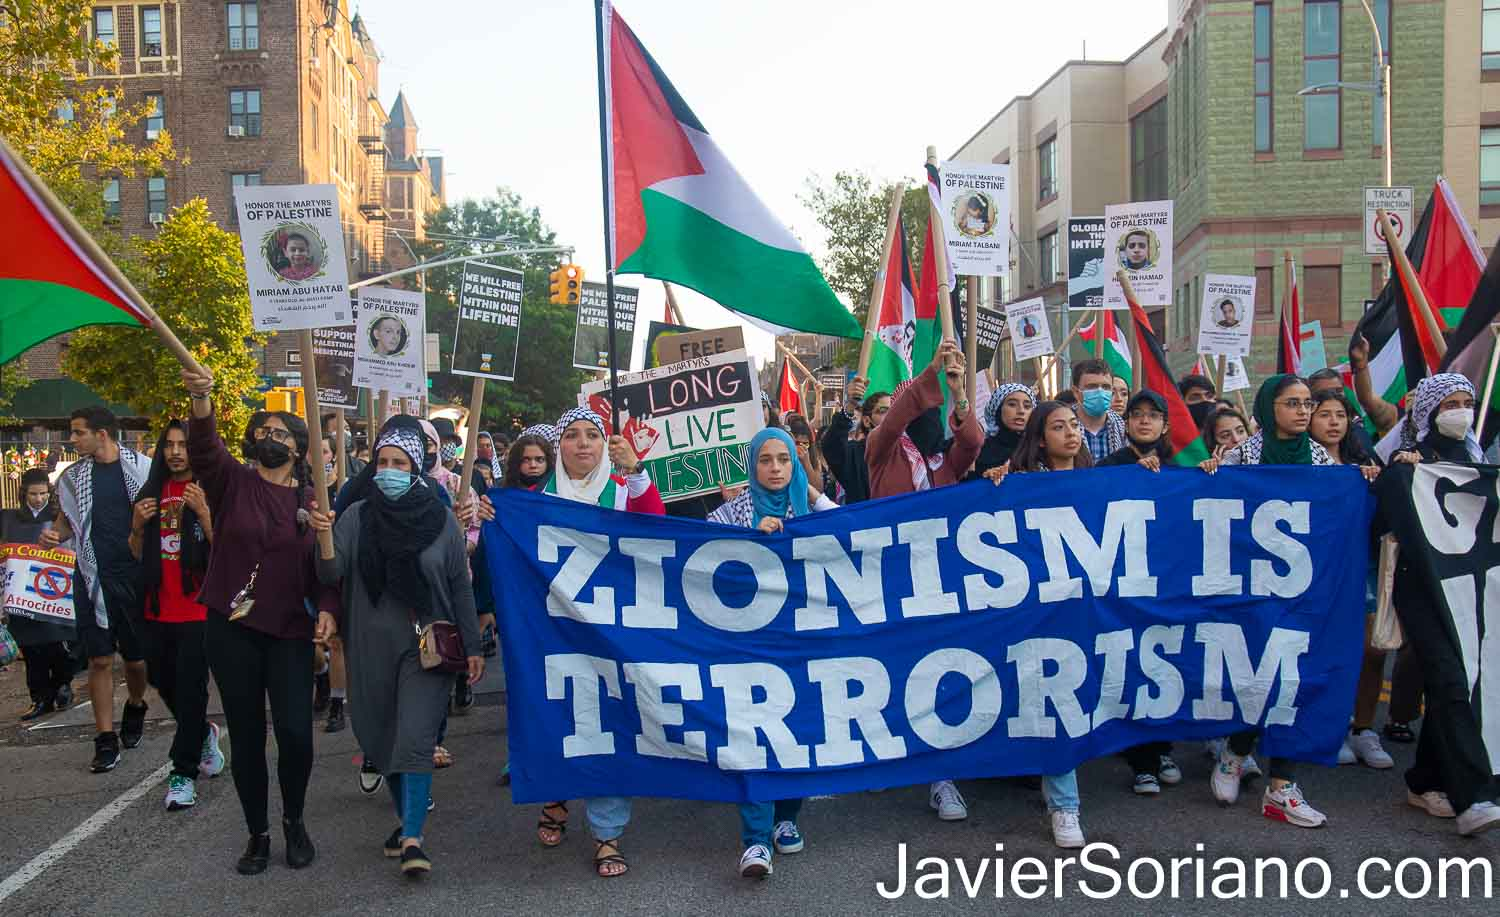 """Saturday, July 31, 2021. Brooklyn, New York City – Memorial, rally and march in Bay Ridge, Brooklyn; New York City, to honor the martyrs of Palestine. THIS PHOTO: Palestinians marching in Bay Ridge. The banner reads, """"ZIONISM IS TERRORISM."""" Photo by Javier Soriano/www.JavierSoriano.com"""